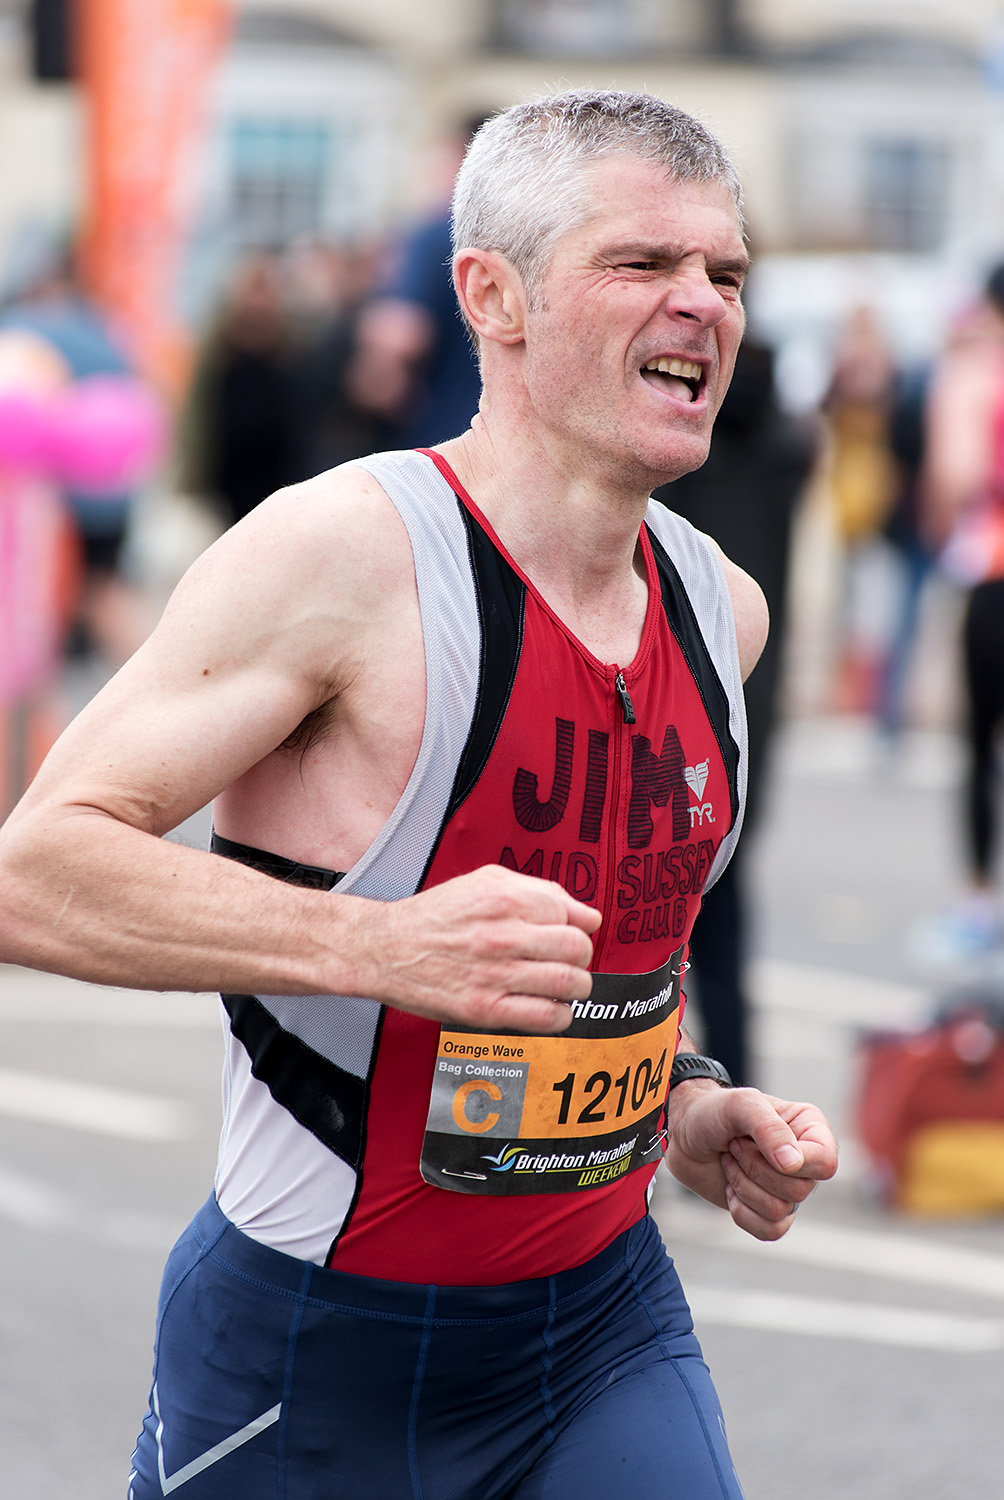 Brighton Marathon 2018 - Mile 25